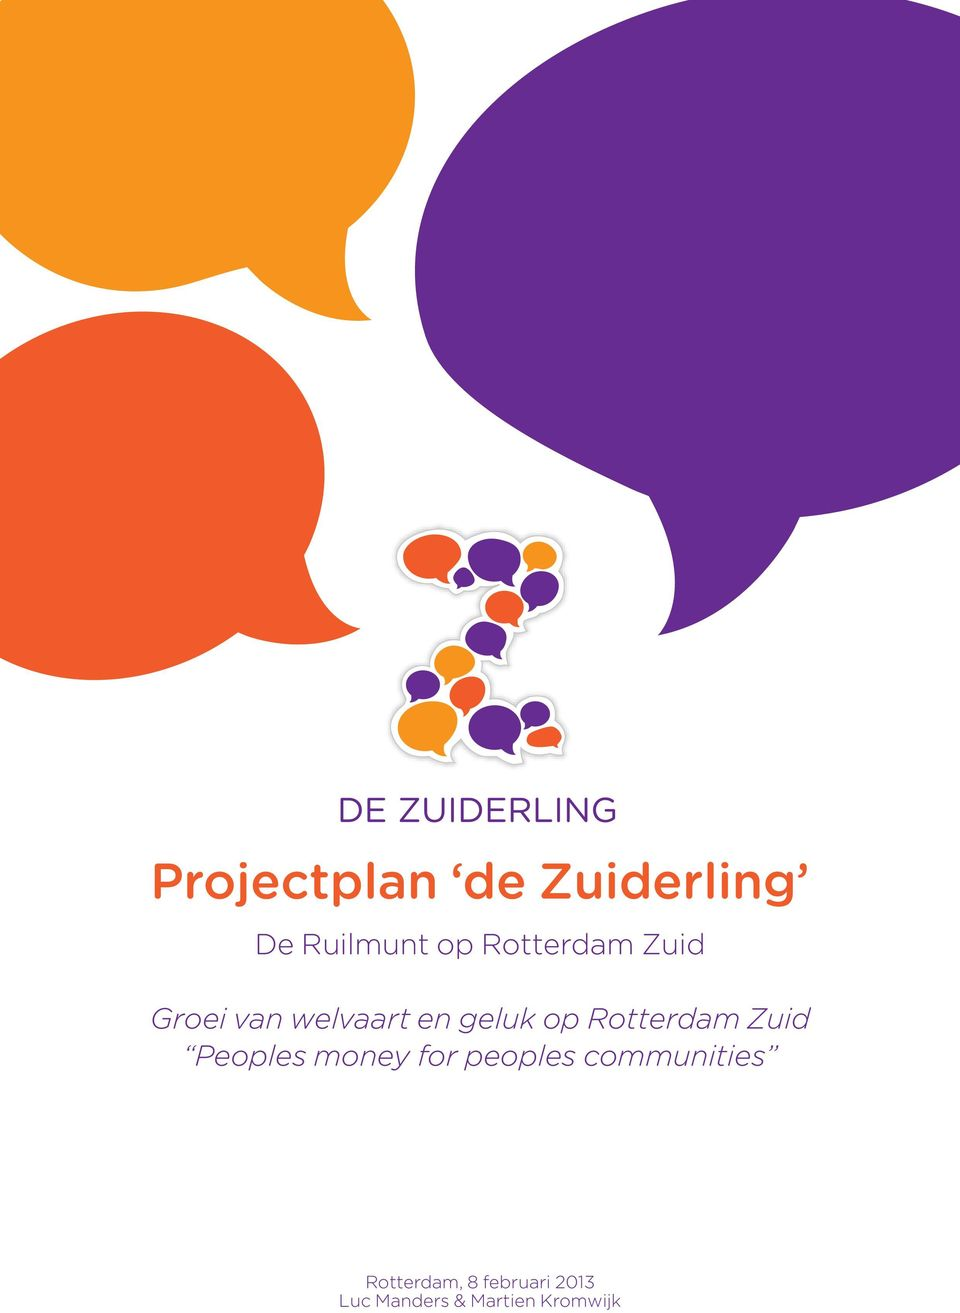 Rotterdam Zuid Peoples money for peoples